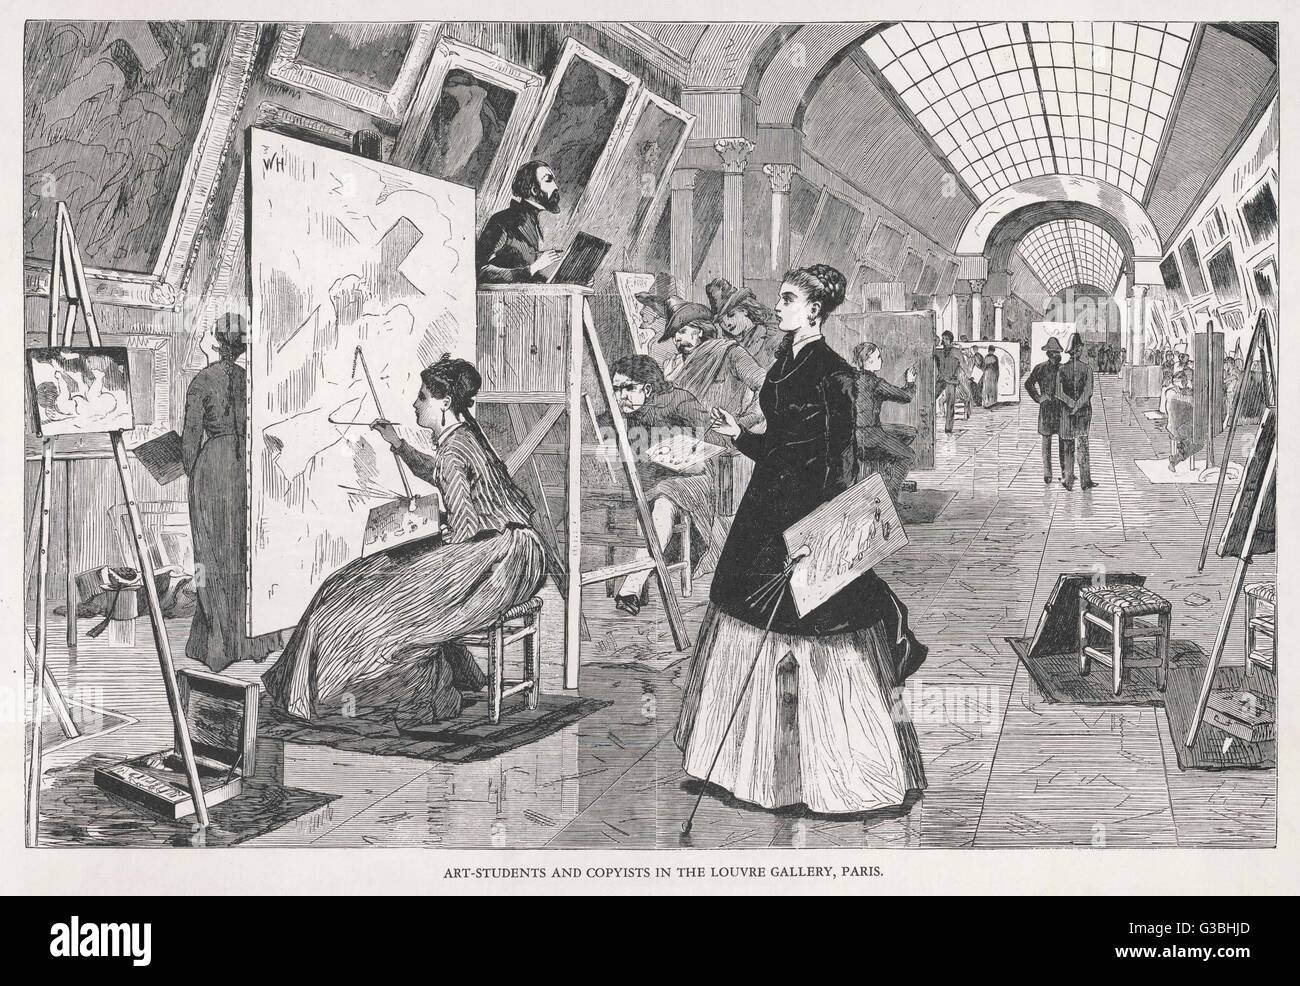 Art students and copyists  learn the techniques of  the masters by trying to  reproduce them.      Date: 1868 - Stock Image